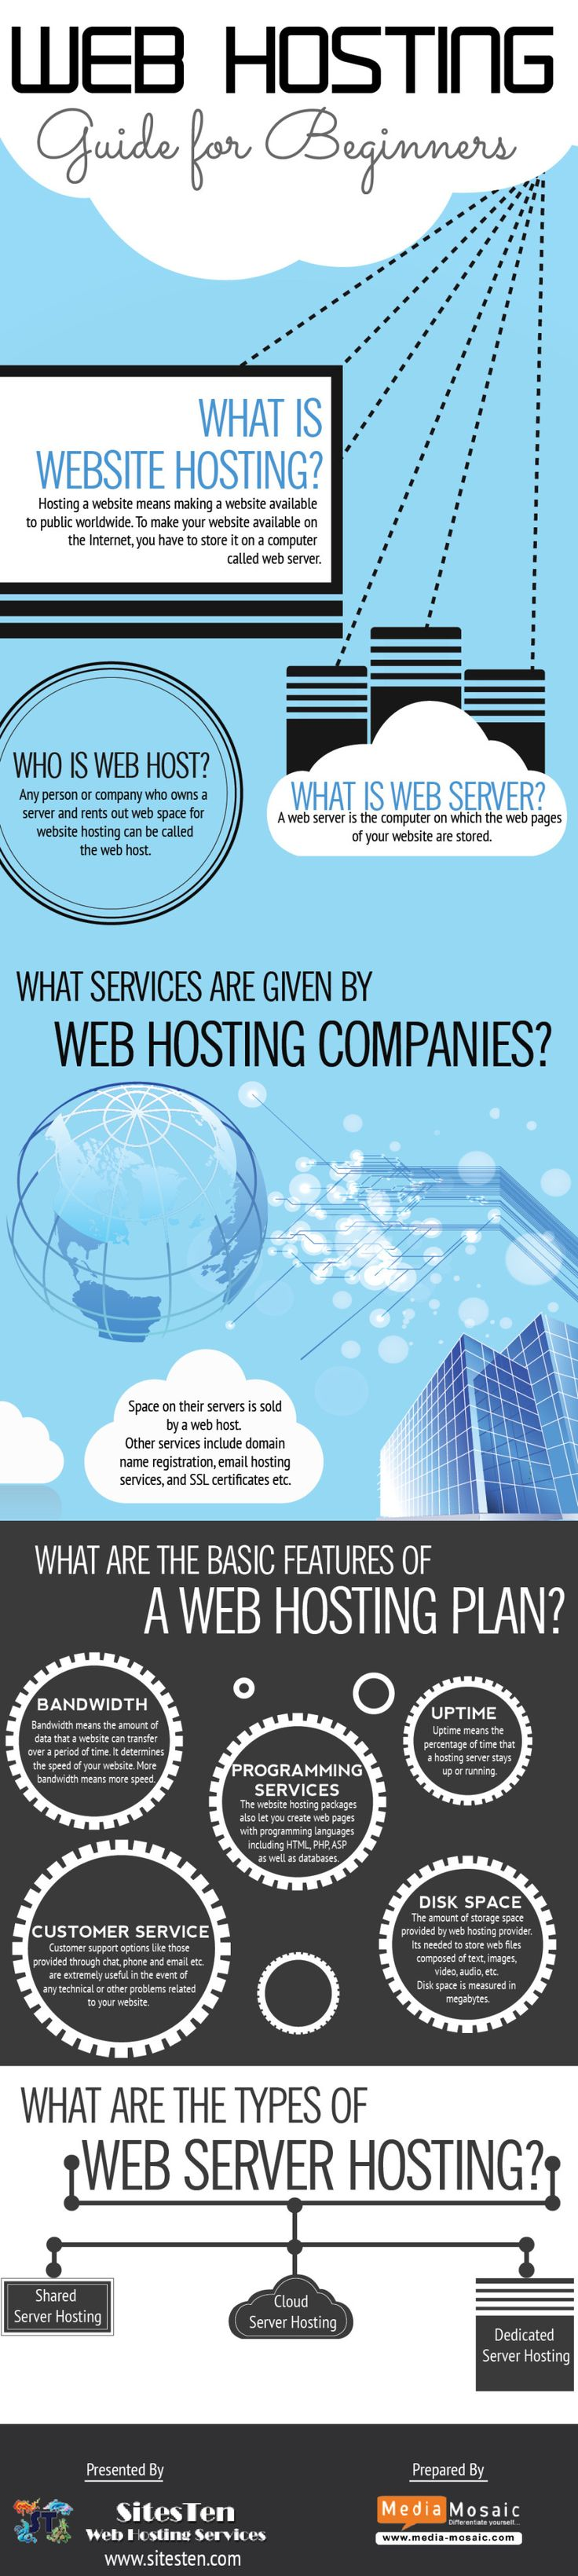 Web Hosting Guide For Beginners .  #infographic #WebHosting #Blogging